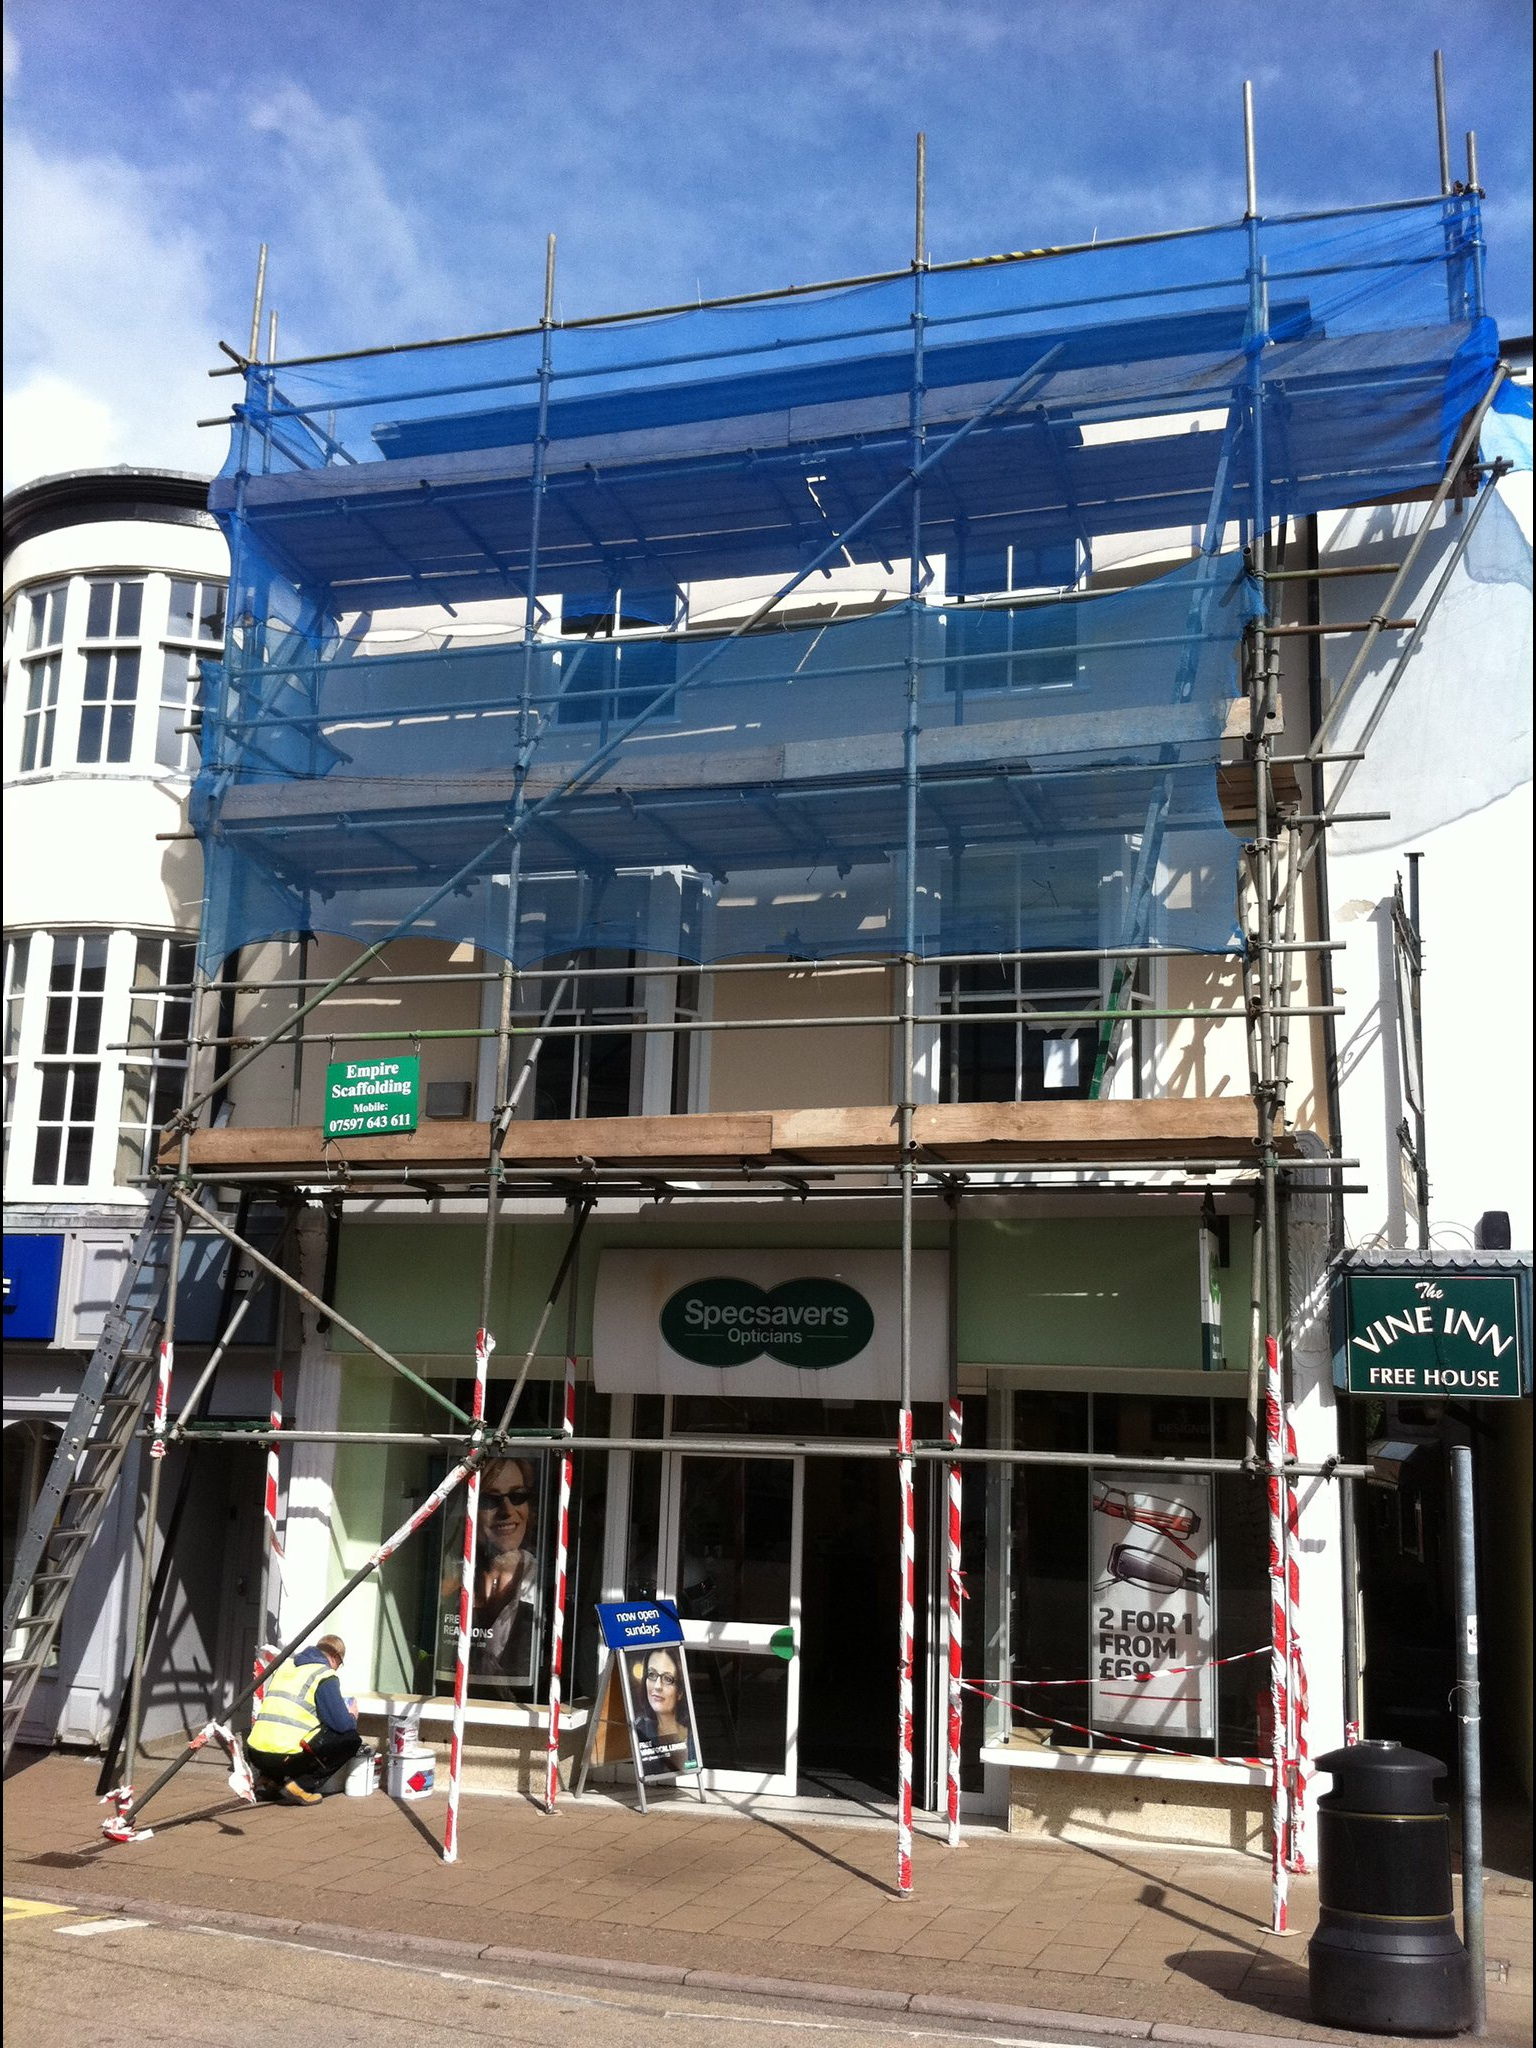 Shop refurbishments